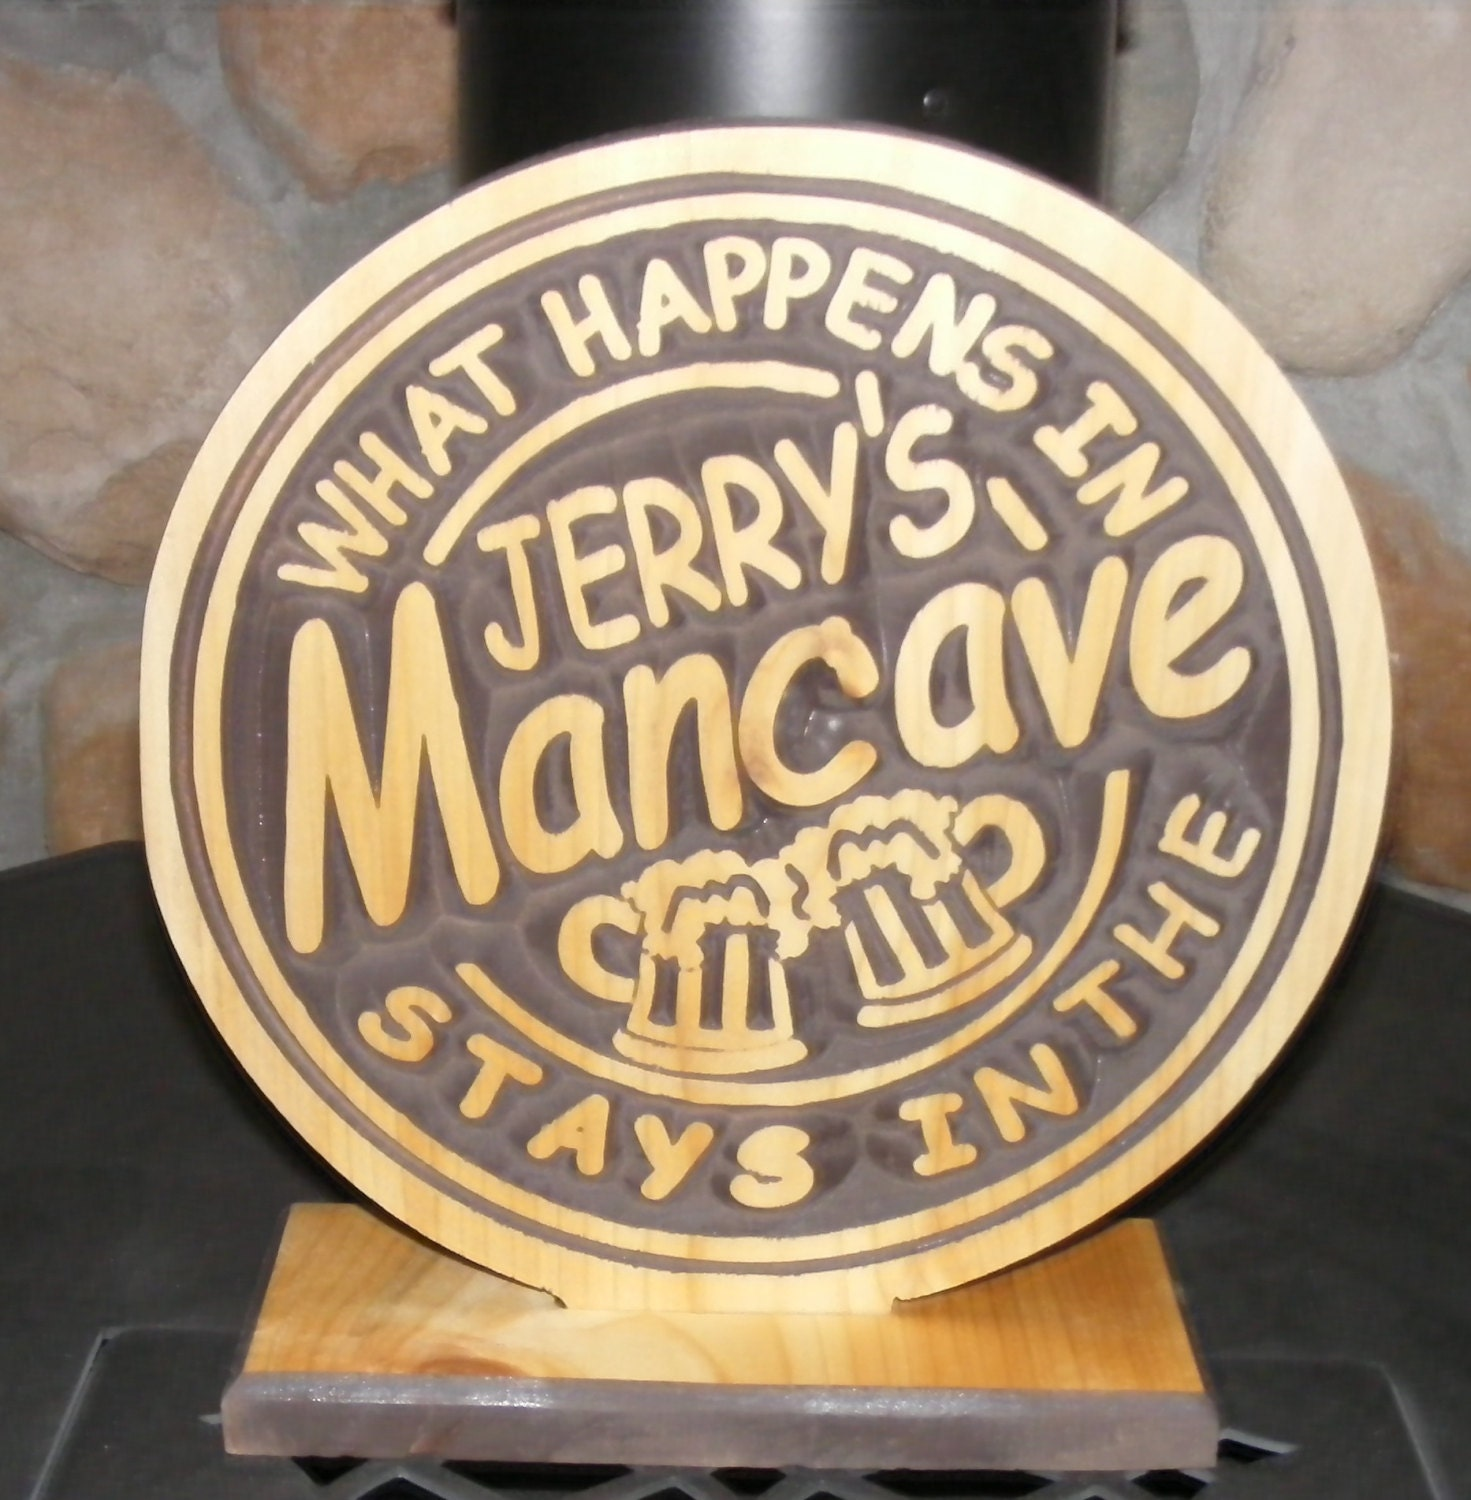 Mancave  Shelf Sitter  Personalize with your choiceof name  10 inch Circle   Carved Wood Sign Wedding groomsmen gift - BlackRiverWoodshop